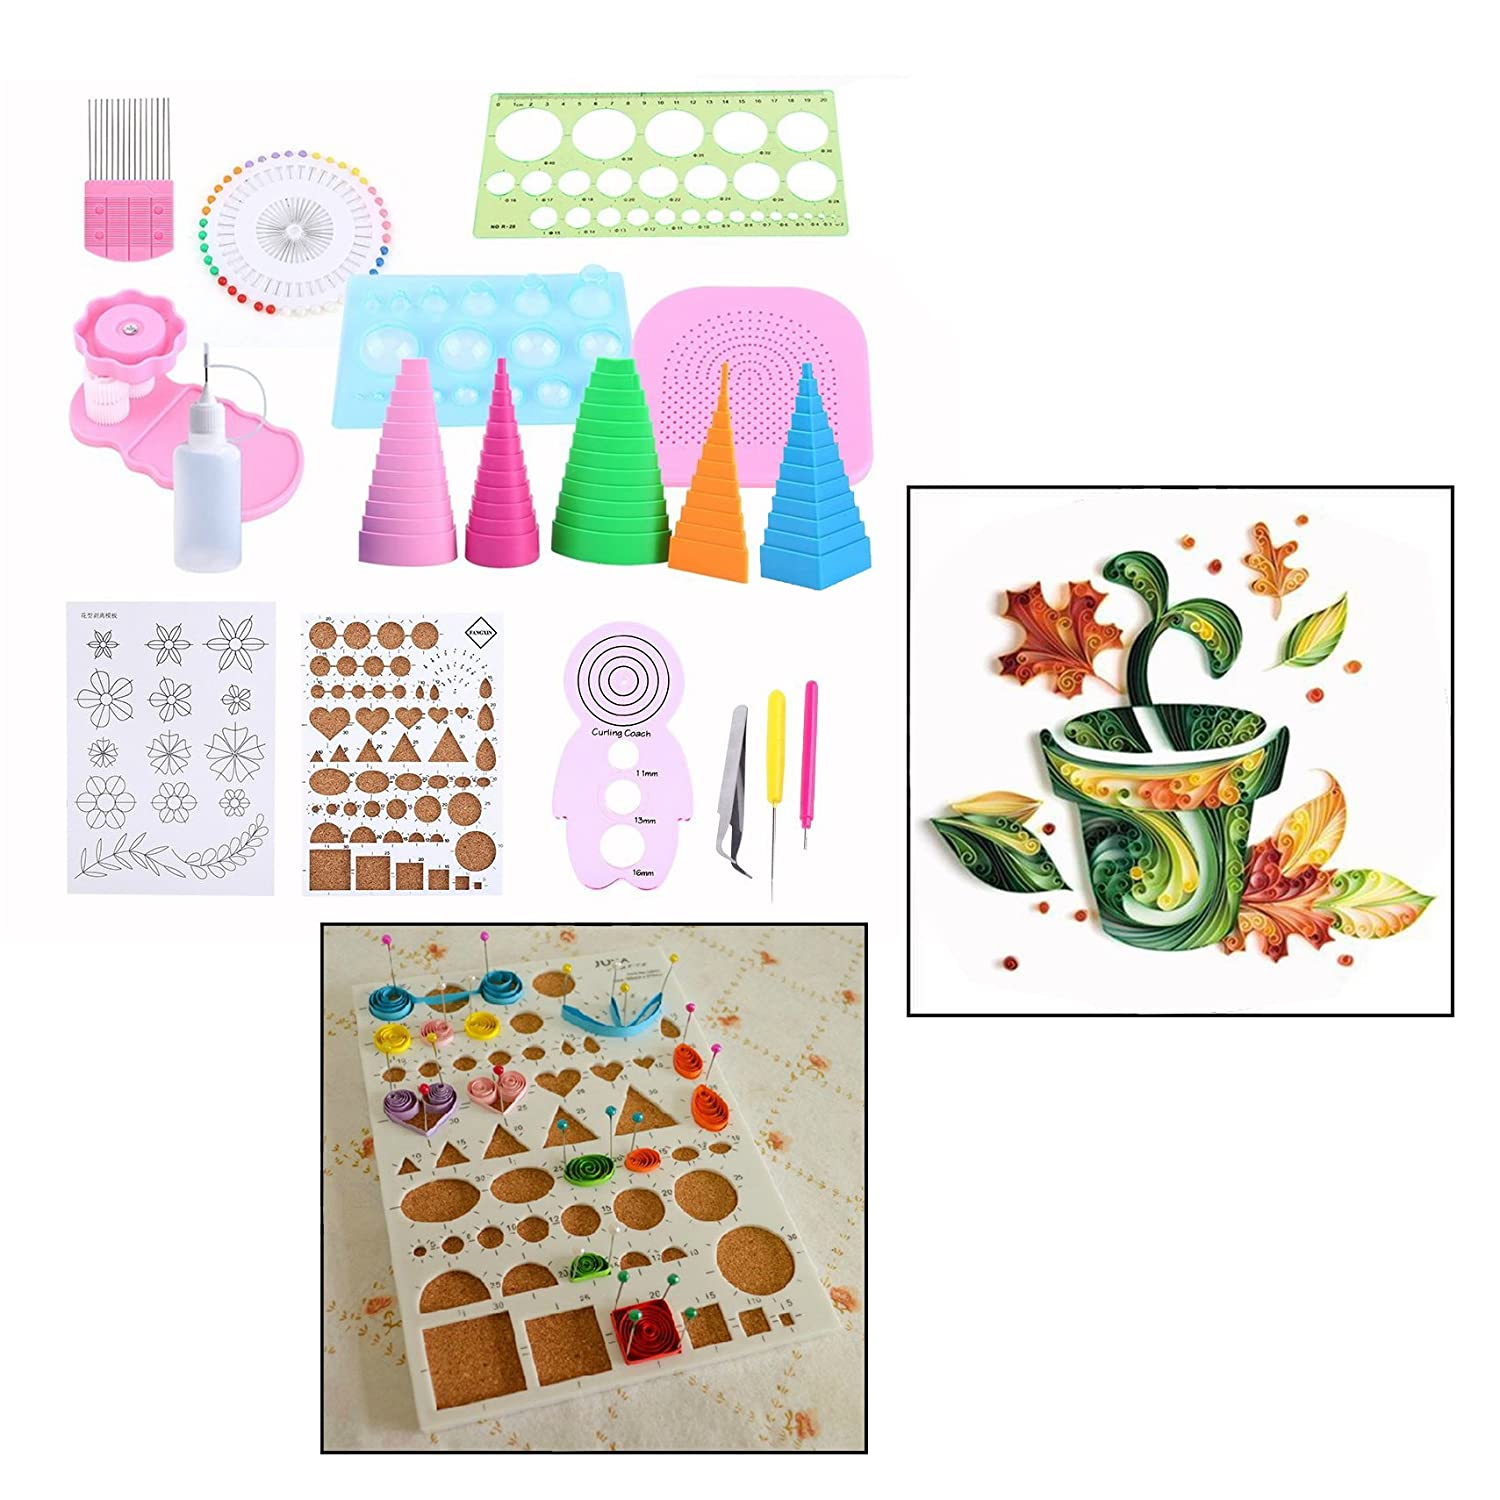 OFKPO Quilling Paper DIY Tools, Paper Craft Rolling Kit for Home Office Decoration